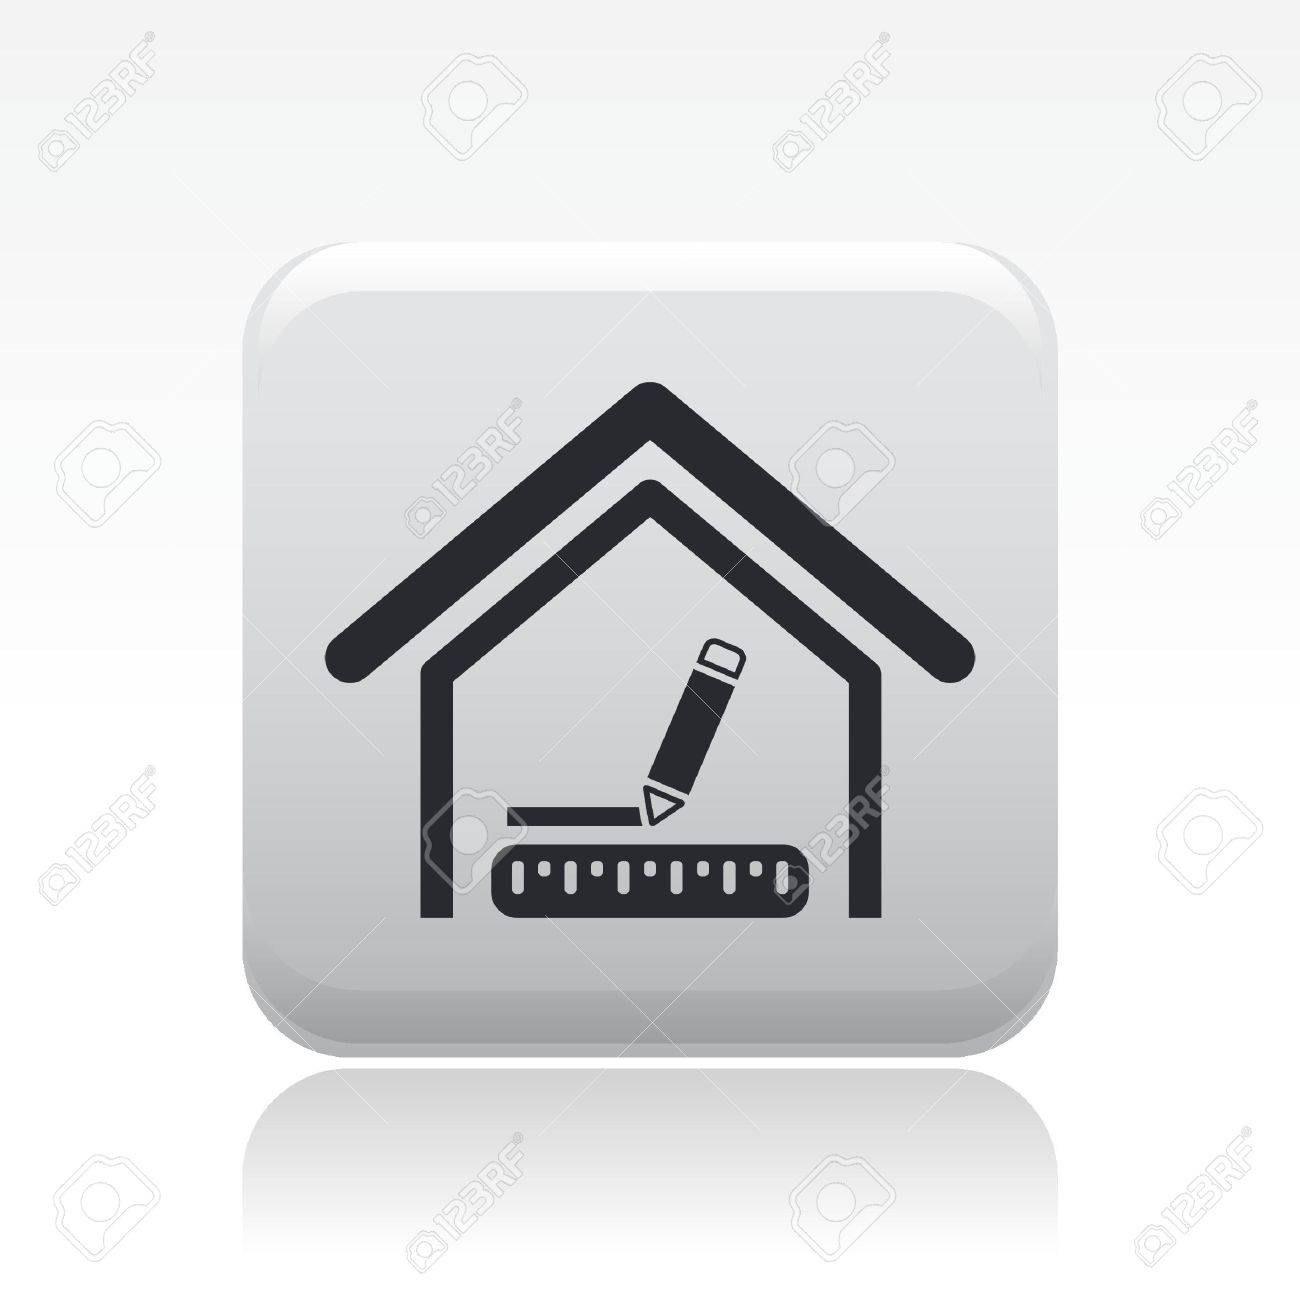 Interieur Icon Vector Illustration Of Single Isolated Interior Design Icon